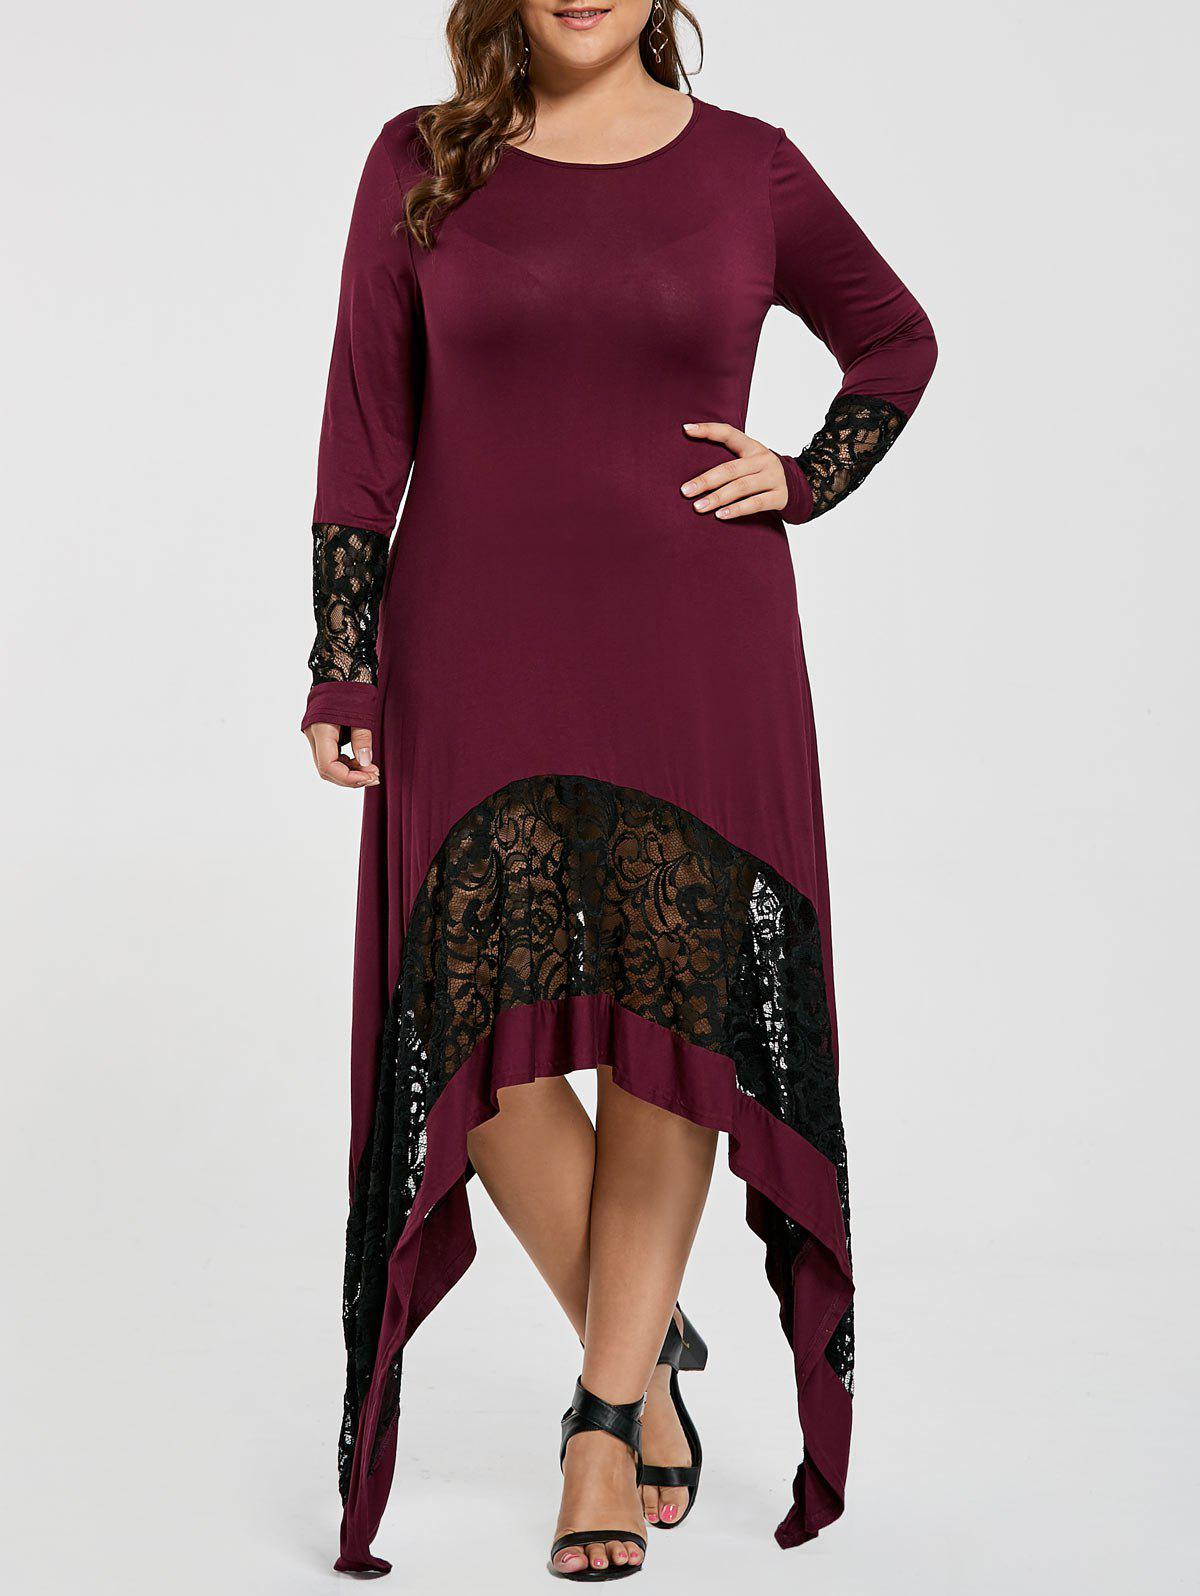 Lace Trim Plus Size Long Asymmetric T-shirt Dress